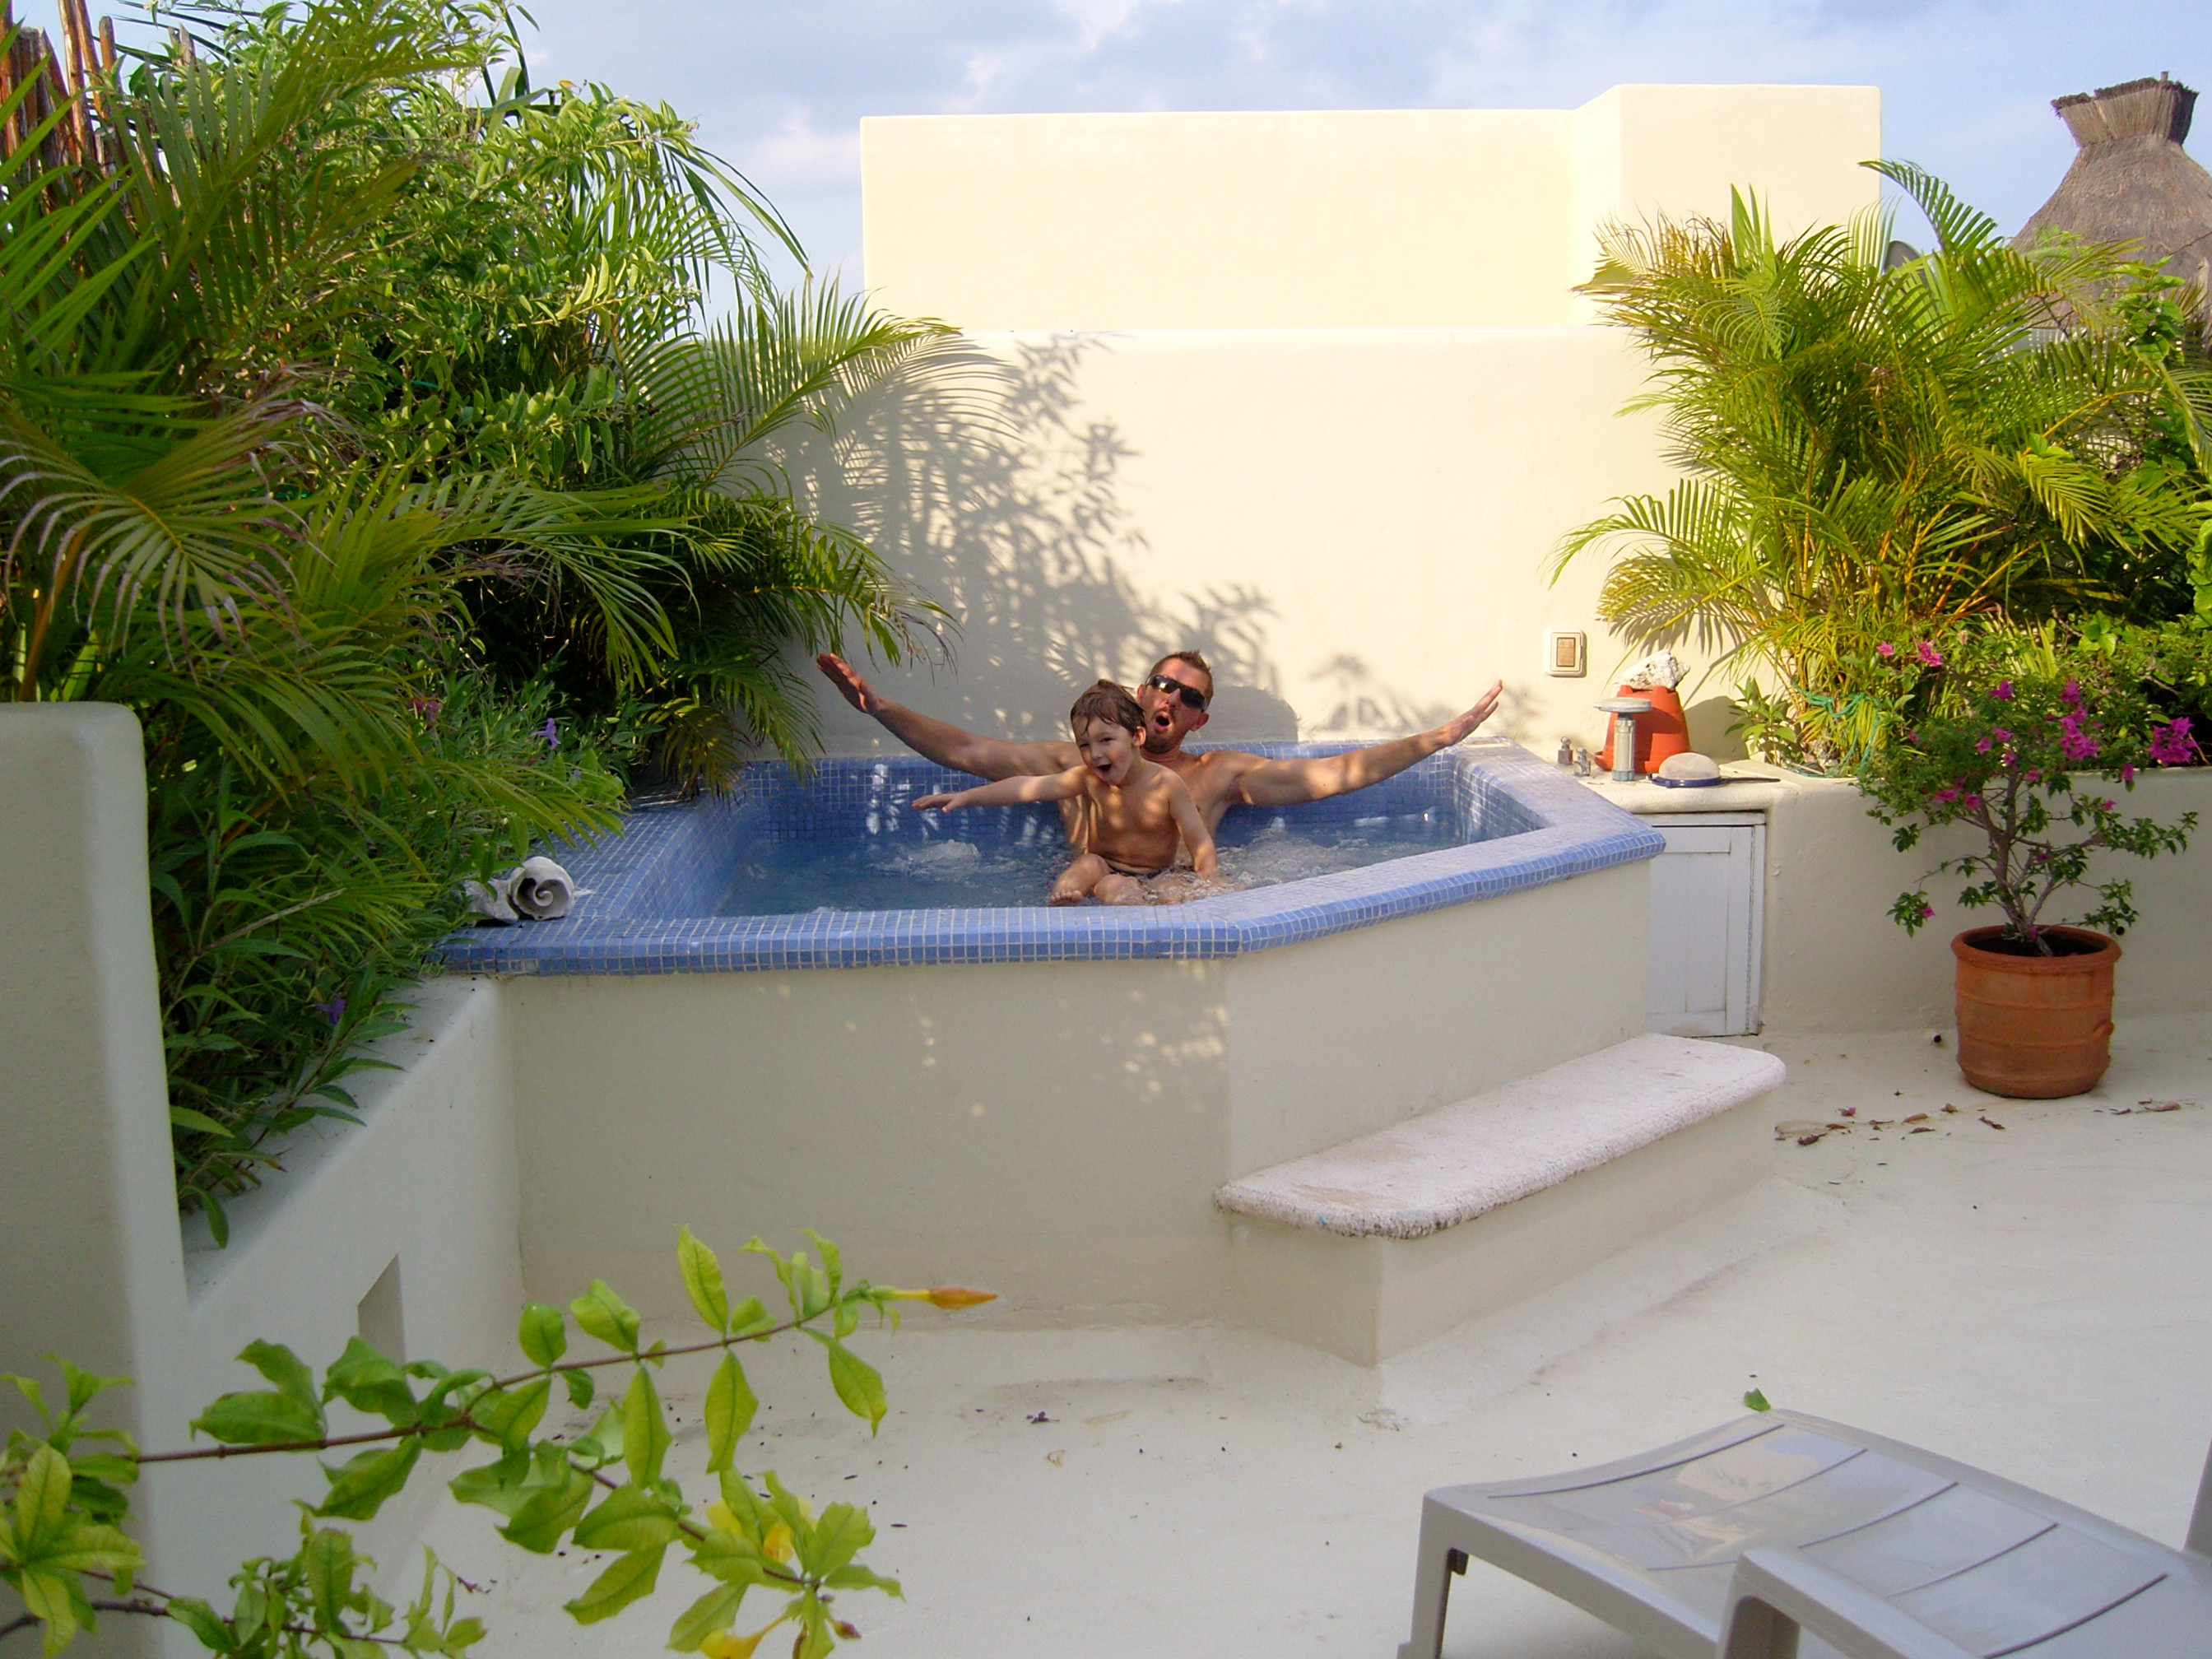 Jacuzzi Gonflable Sur Terrasse La Vida A Playa Just Another Wordpress Weblog Page 4